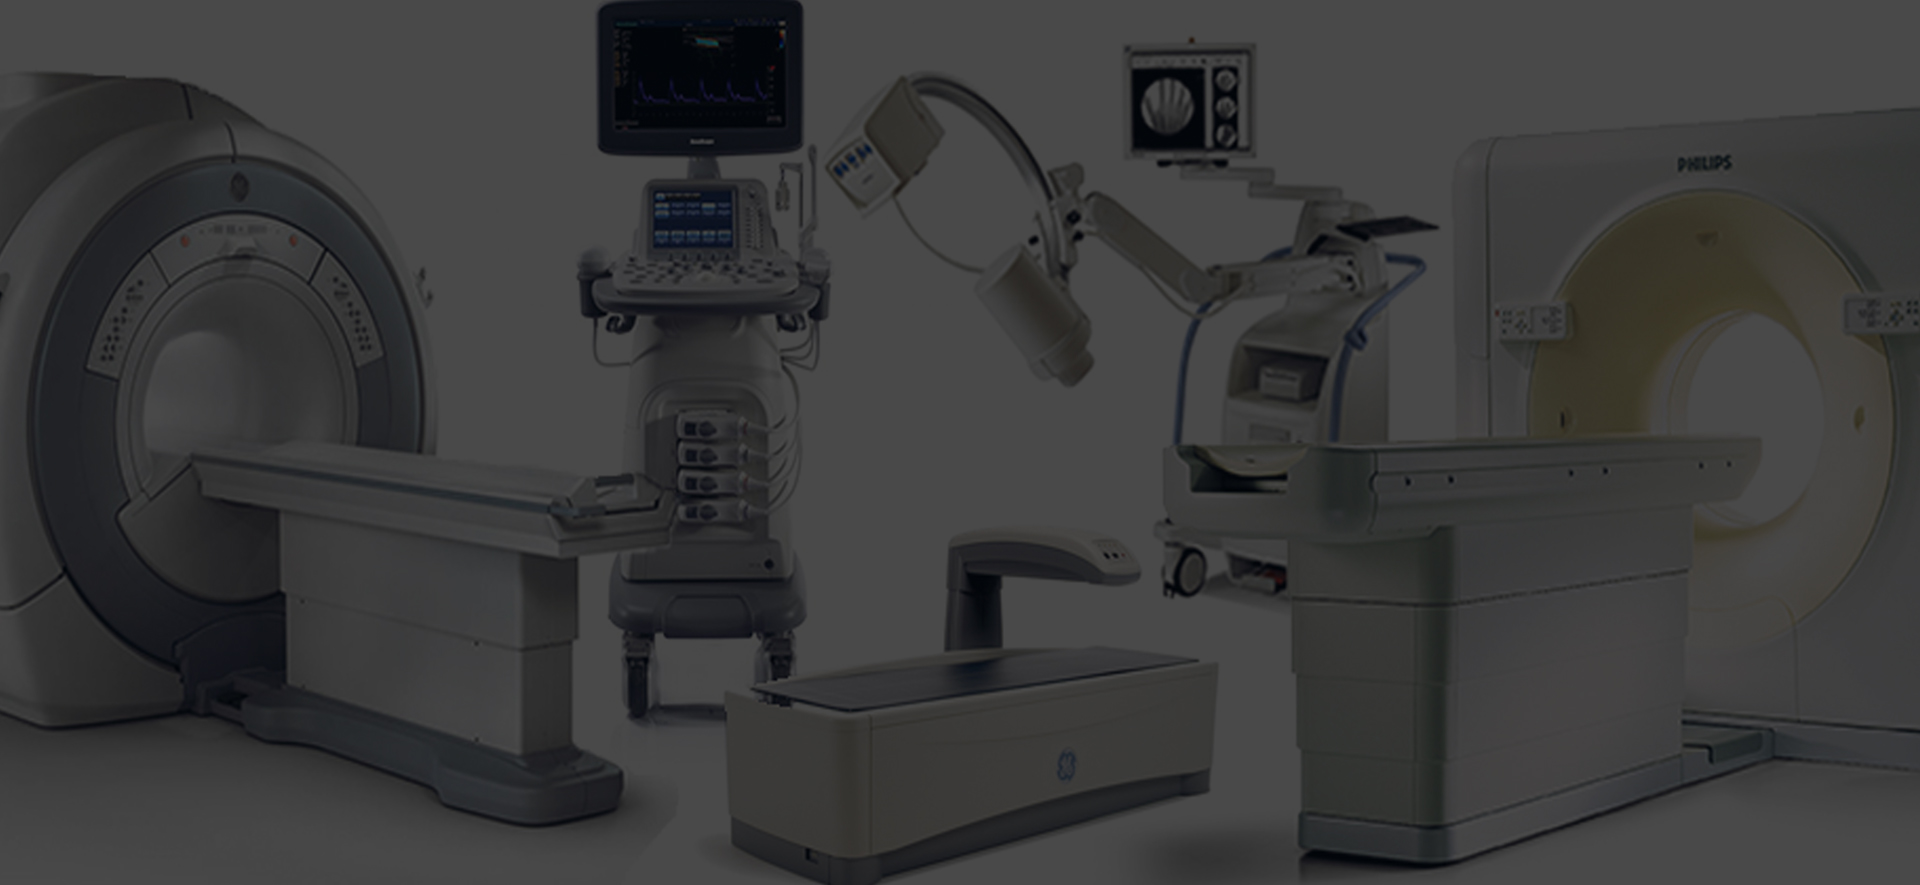 Best Medical Equipment Repairs Harare